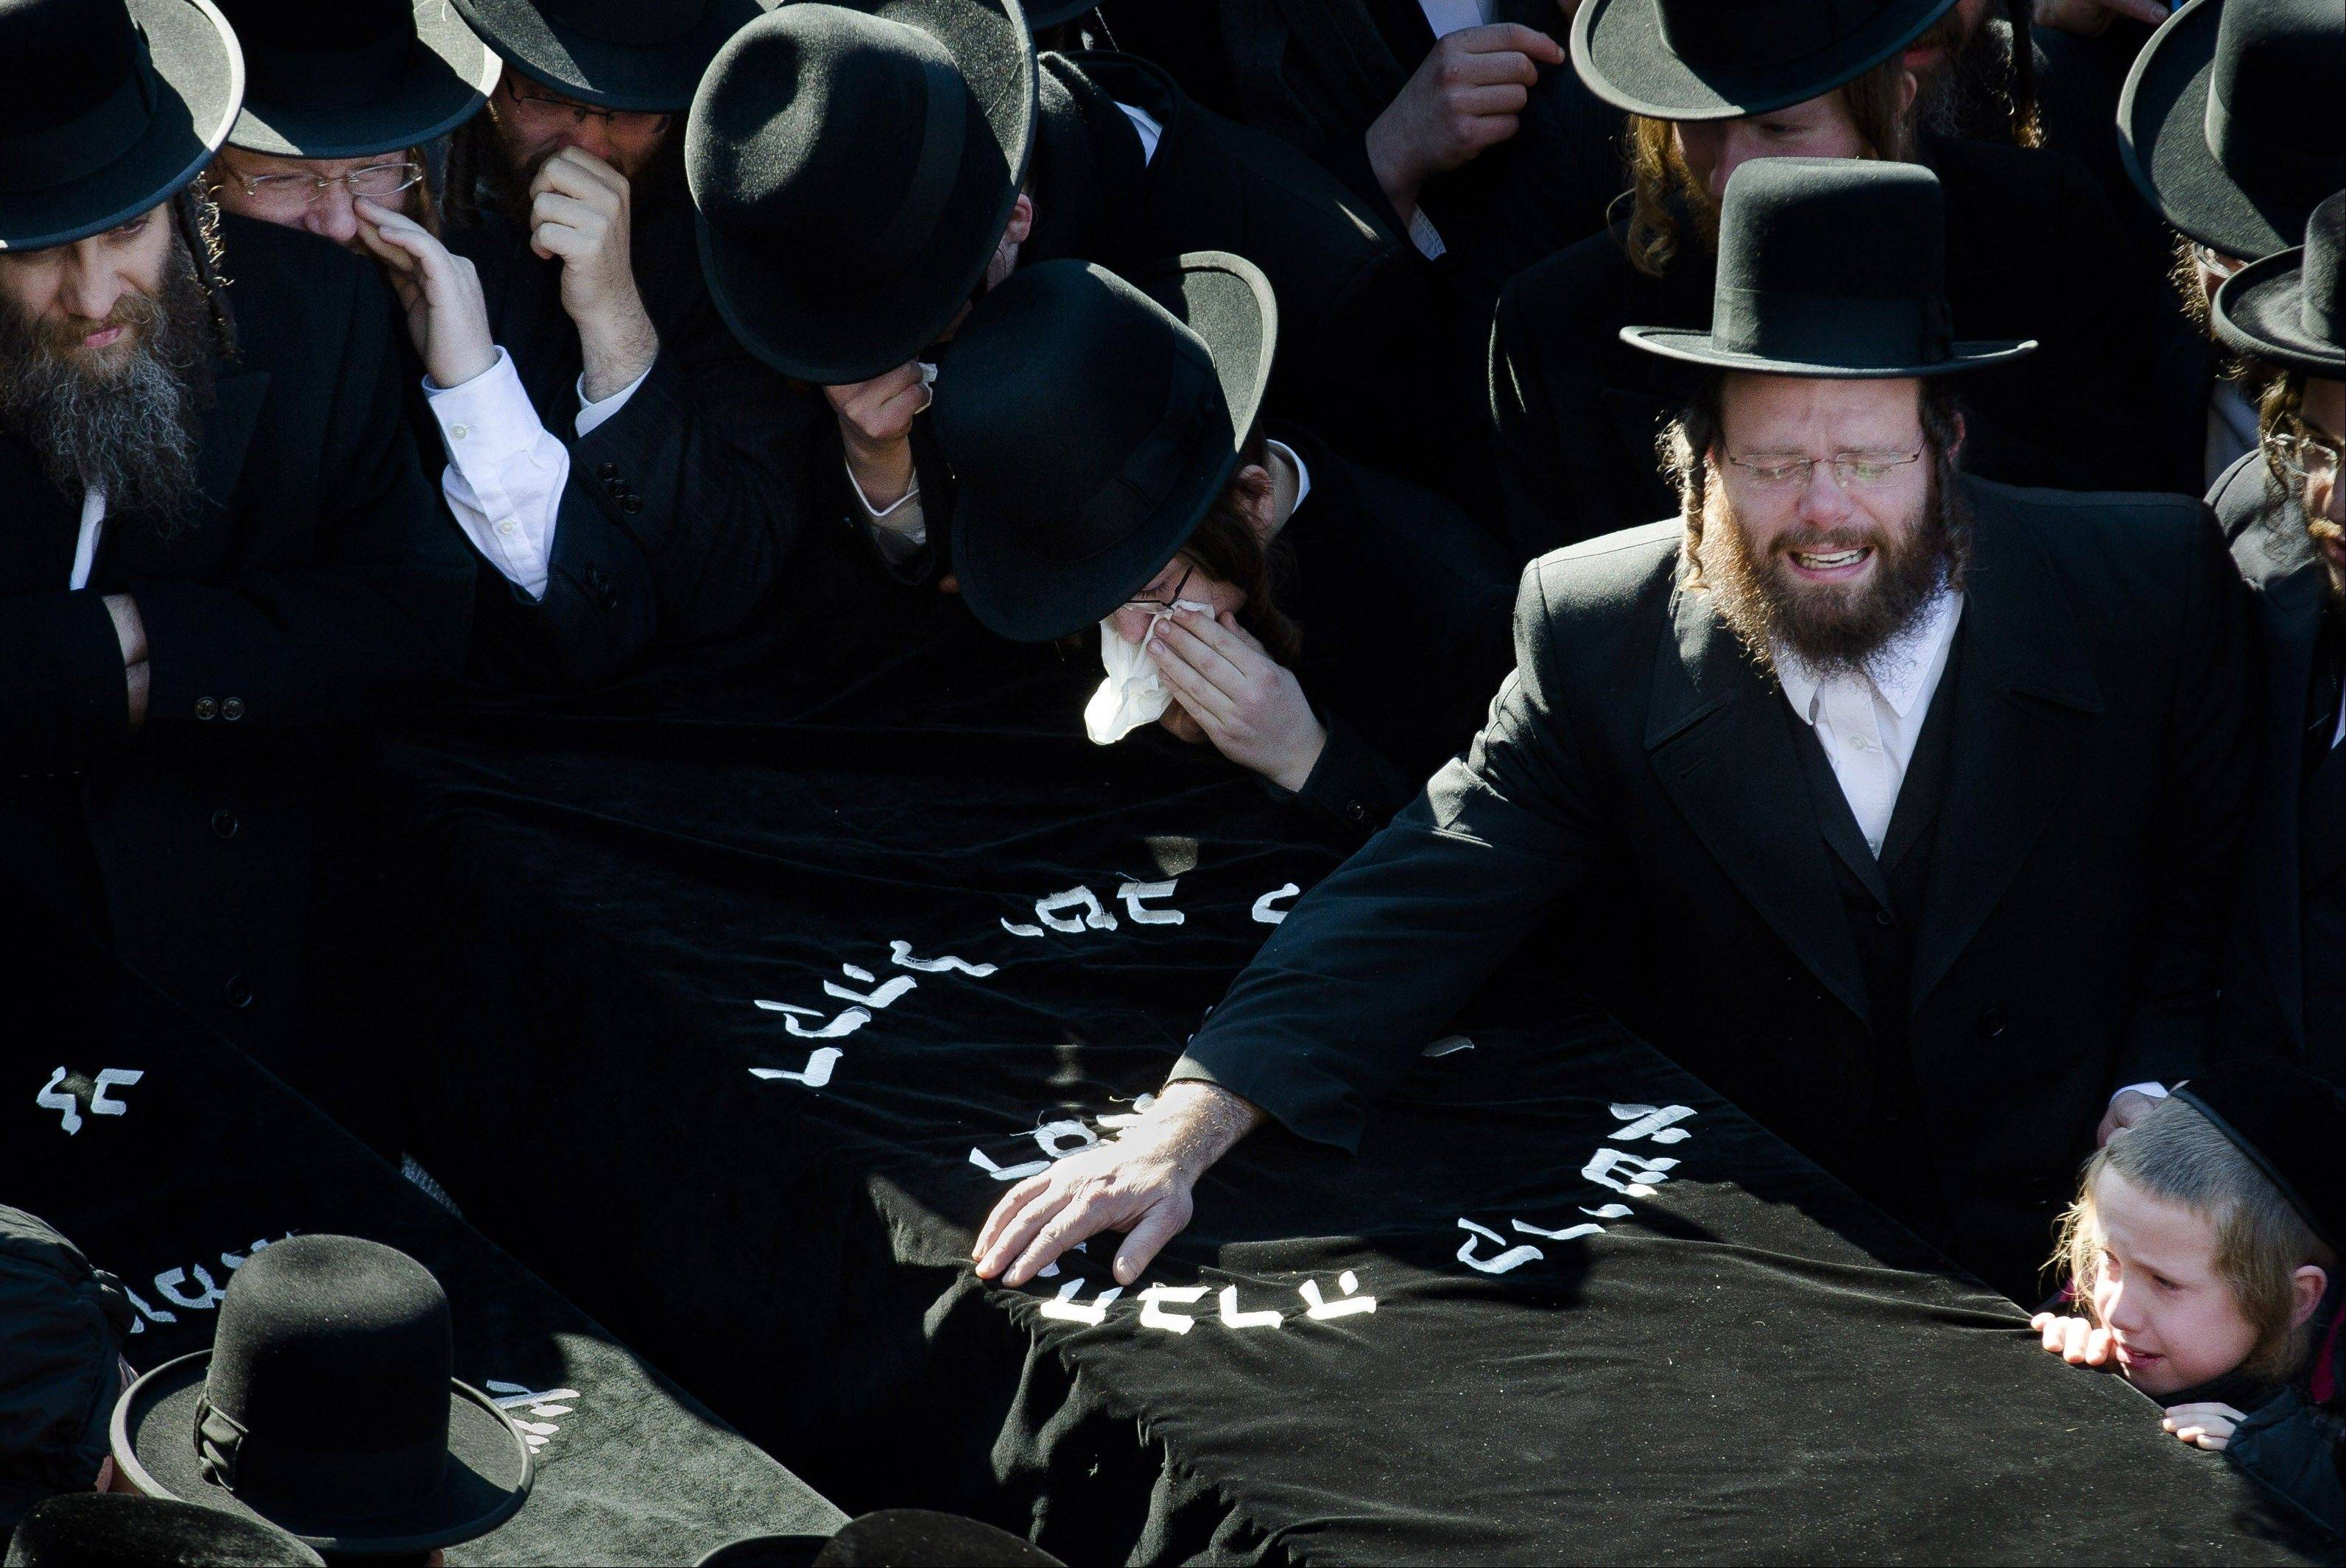 Members of the Satmar Orthodox Jewish community grieve over the coffins at the funeral for two expectant parents who were killed in a car accident Sunday in the Brooklyn borough of New York. A driver struck the car early Sunday morning, killing both parents. Their baby, who was born prematurely, died early Monday morning.